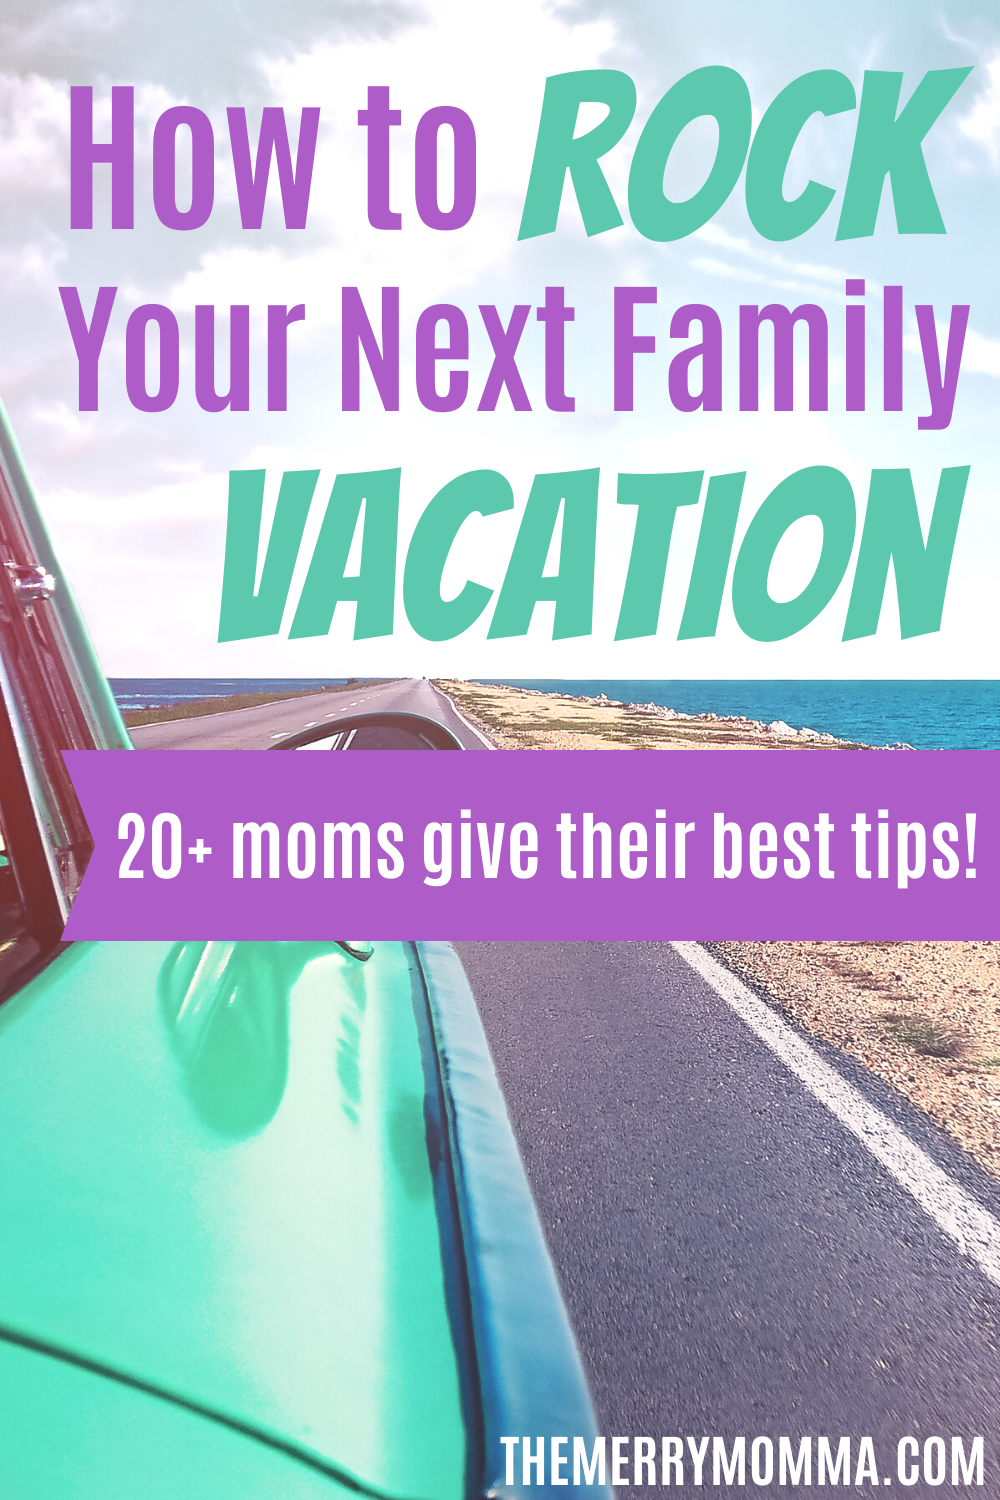 How to Rock Your Next Family Vacation